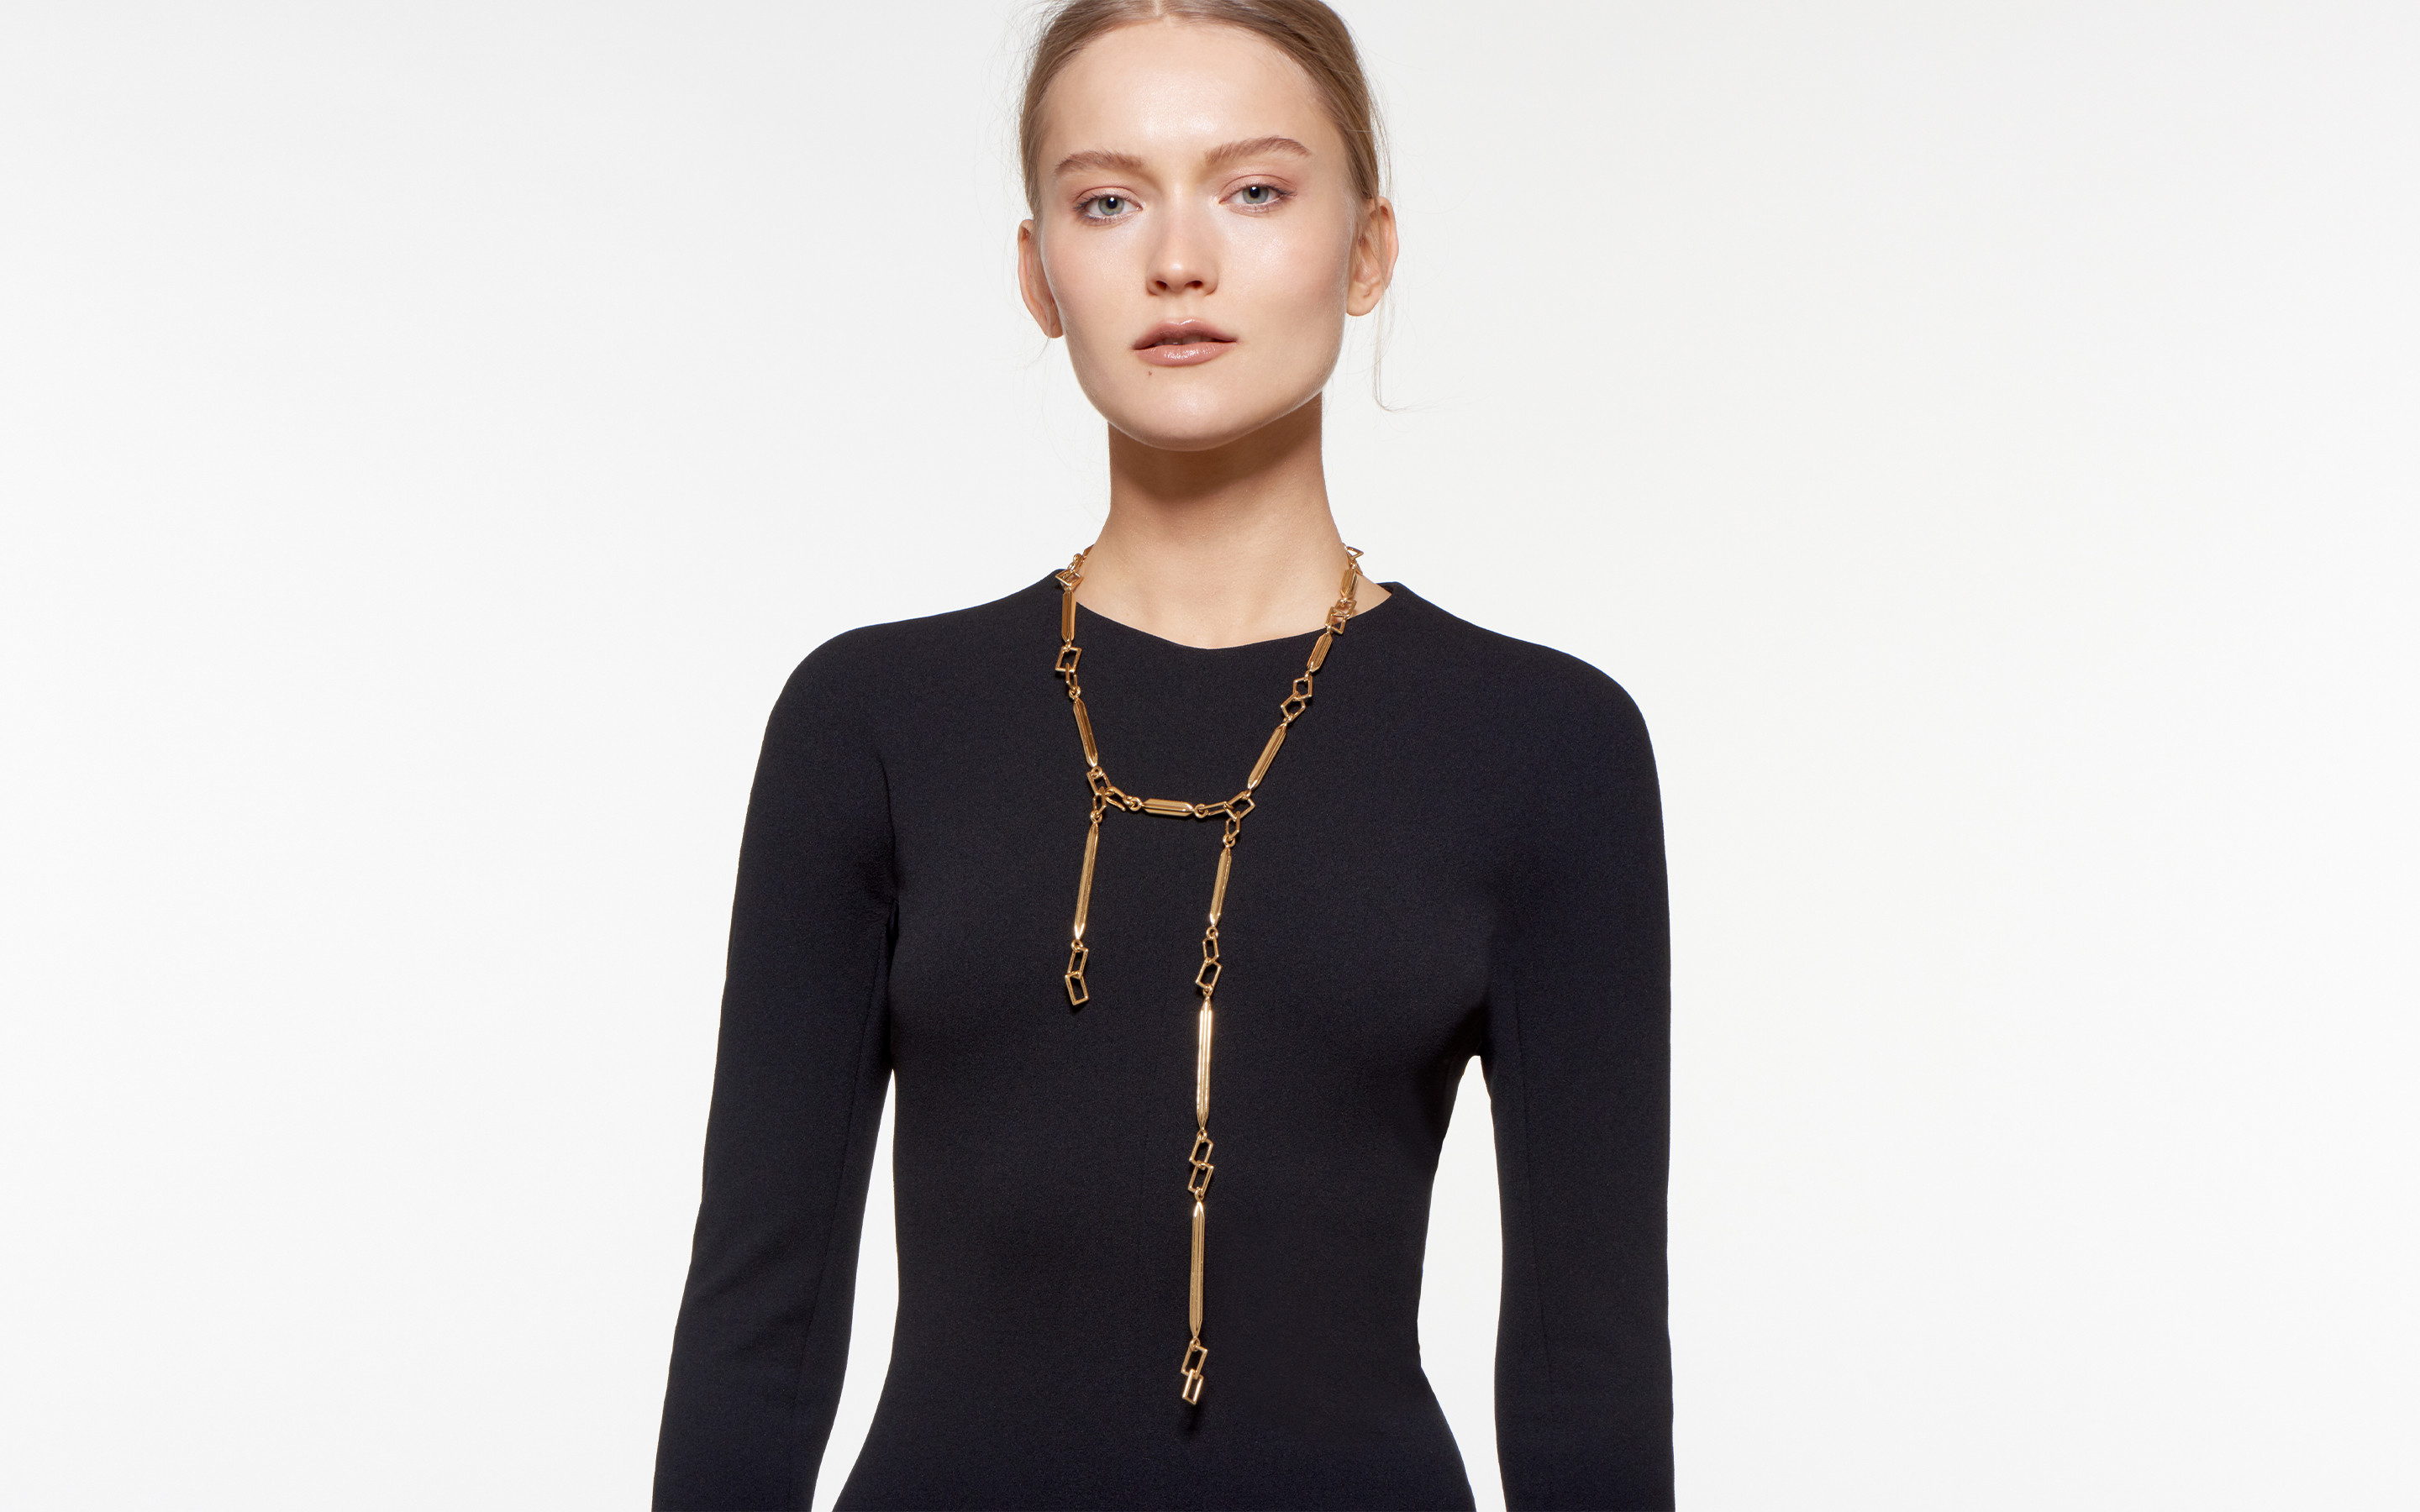 Obelisk Convertible Rope Necklace